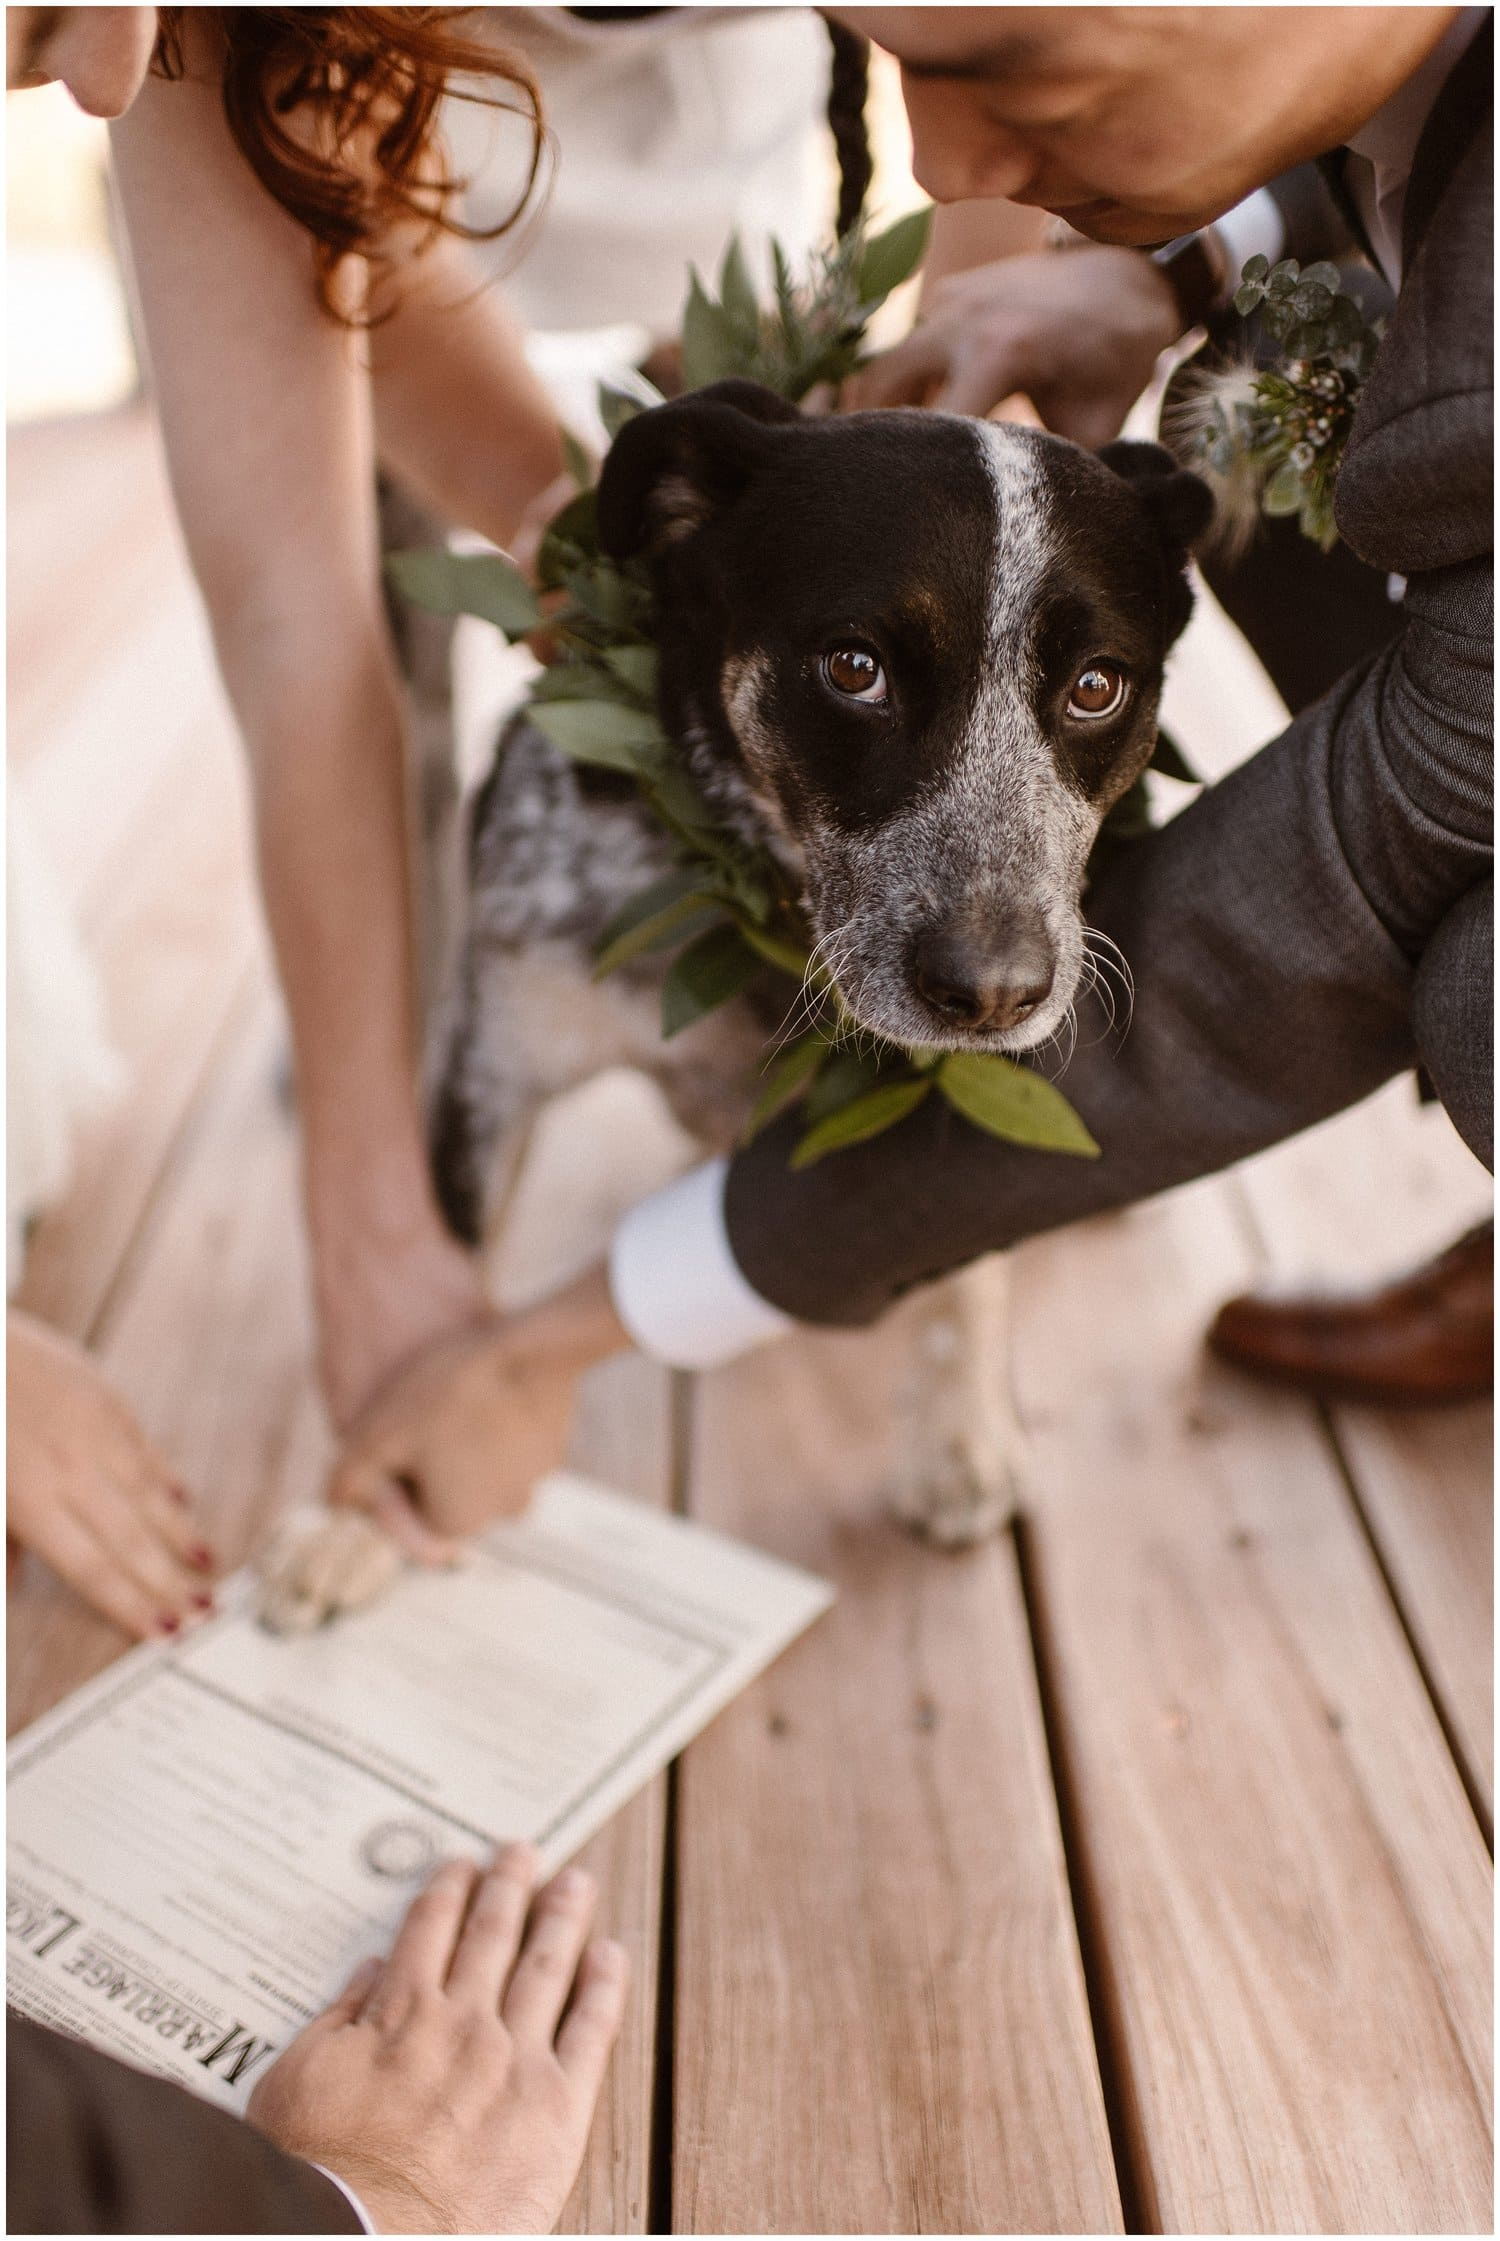 A black dog stamps his paw on a marriage license.